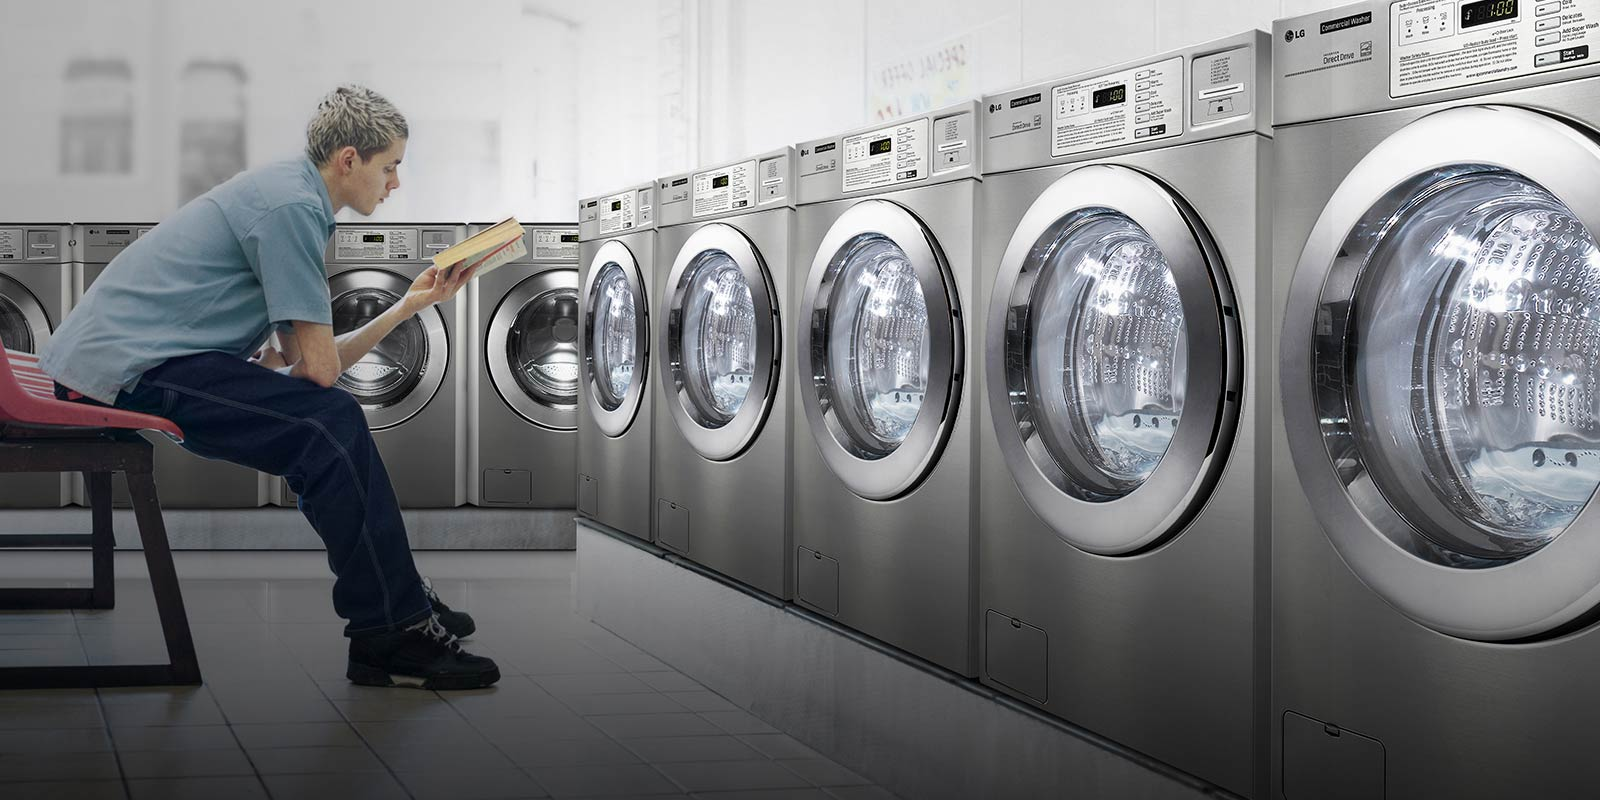 Coin operated tumble dryers from LG will help you grow your business